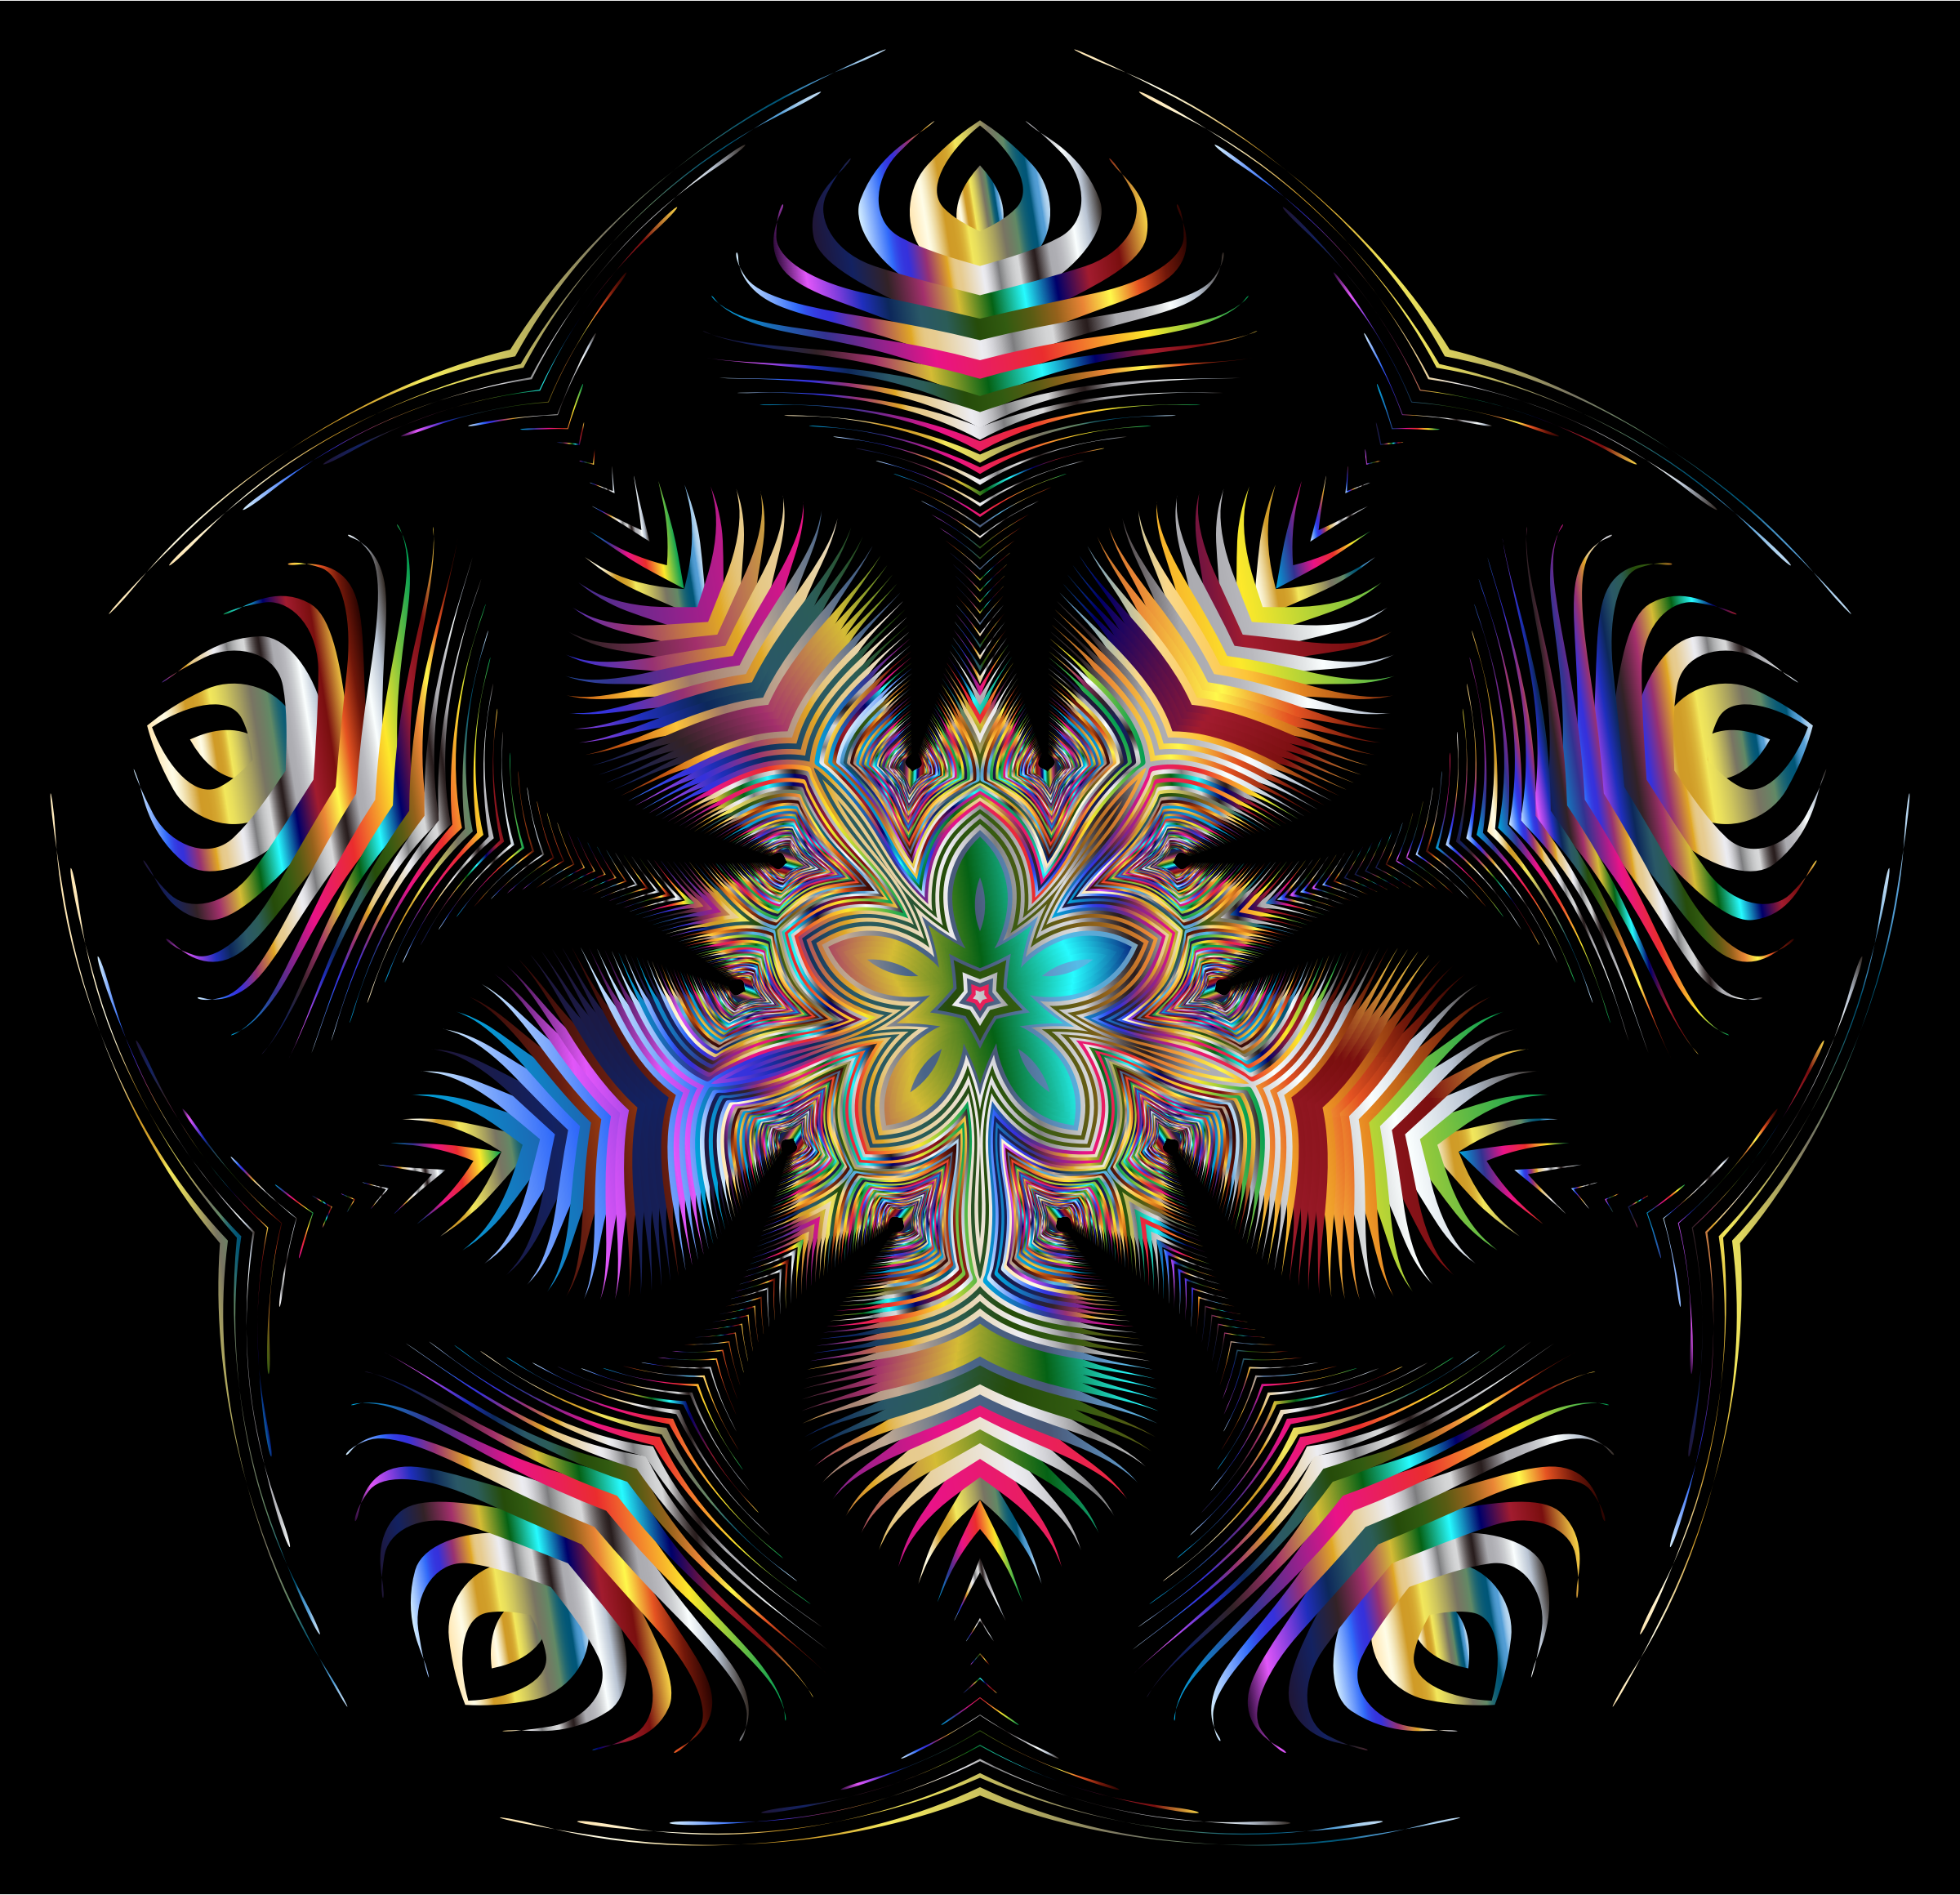 Prismatic Star Line Art 7 by GDJ